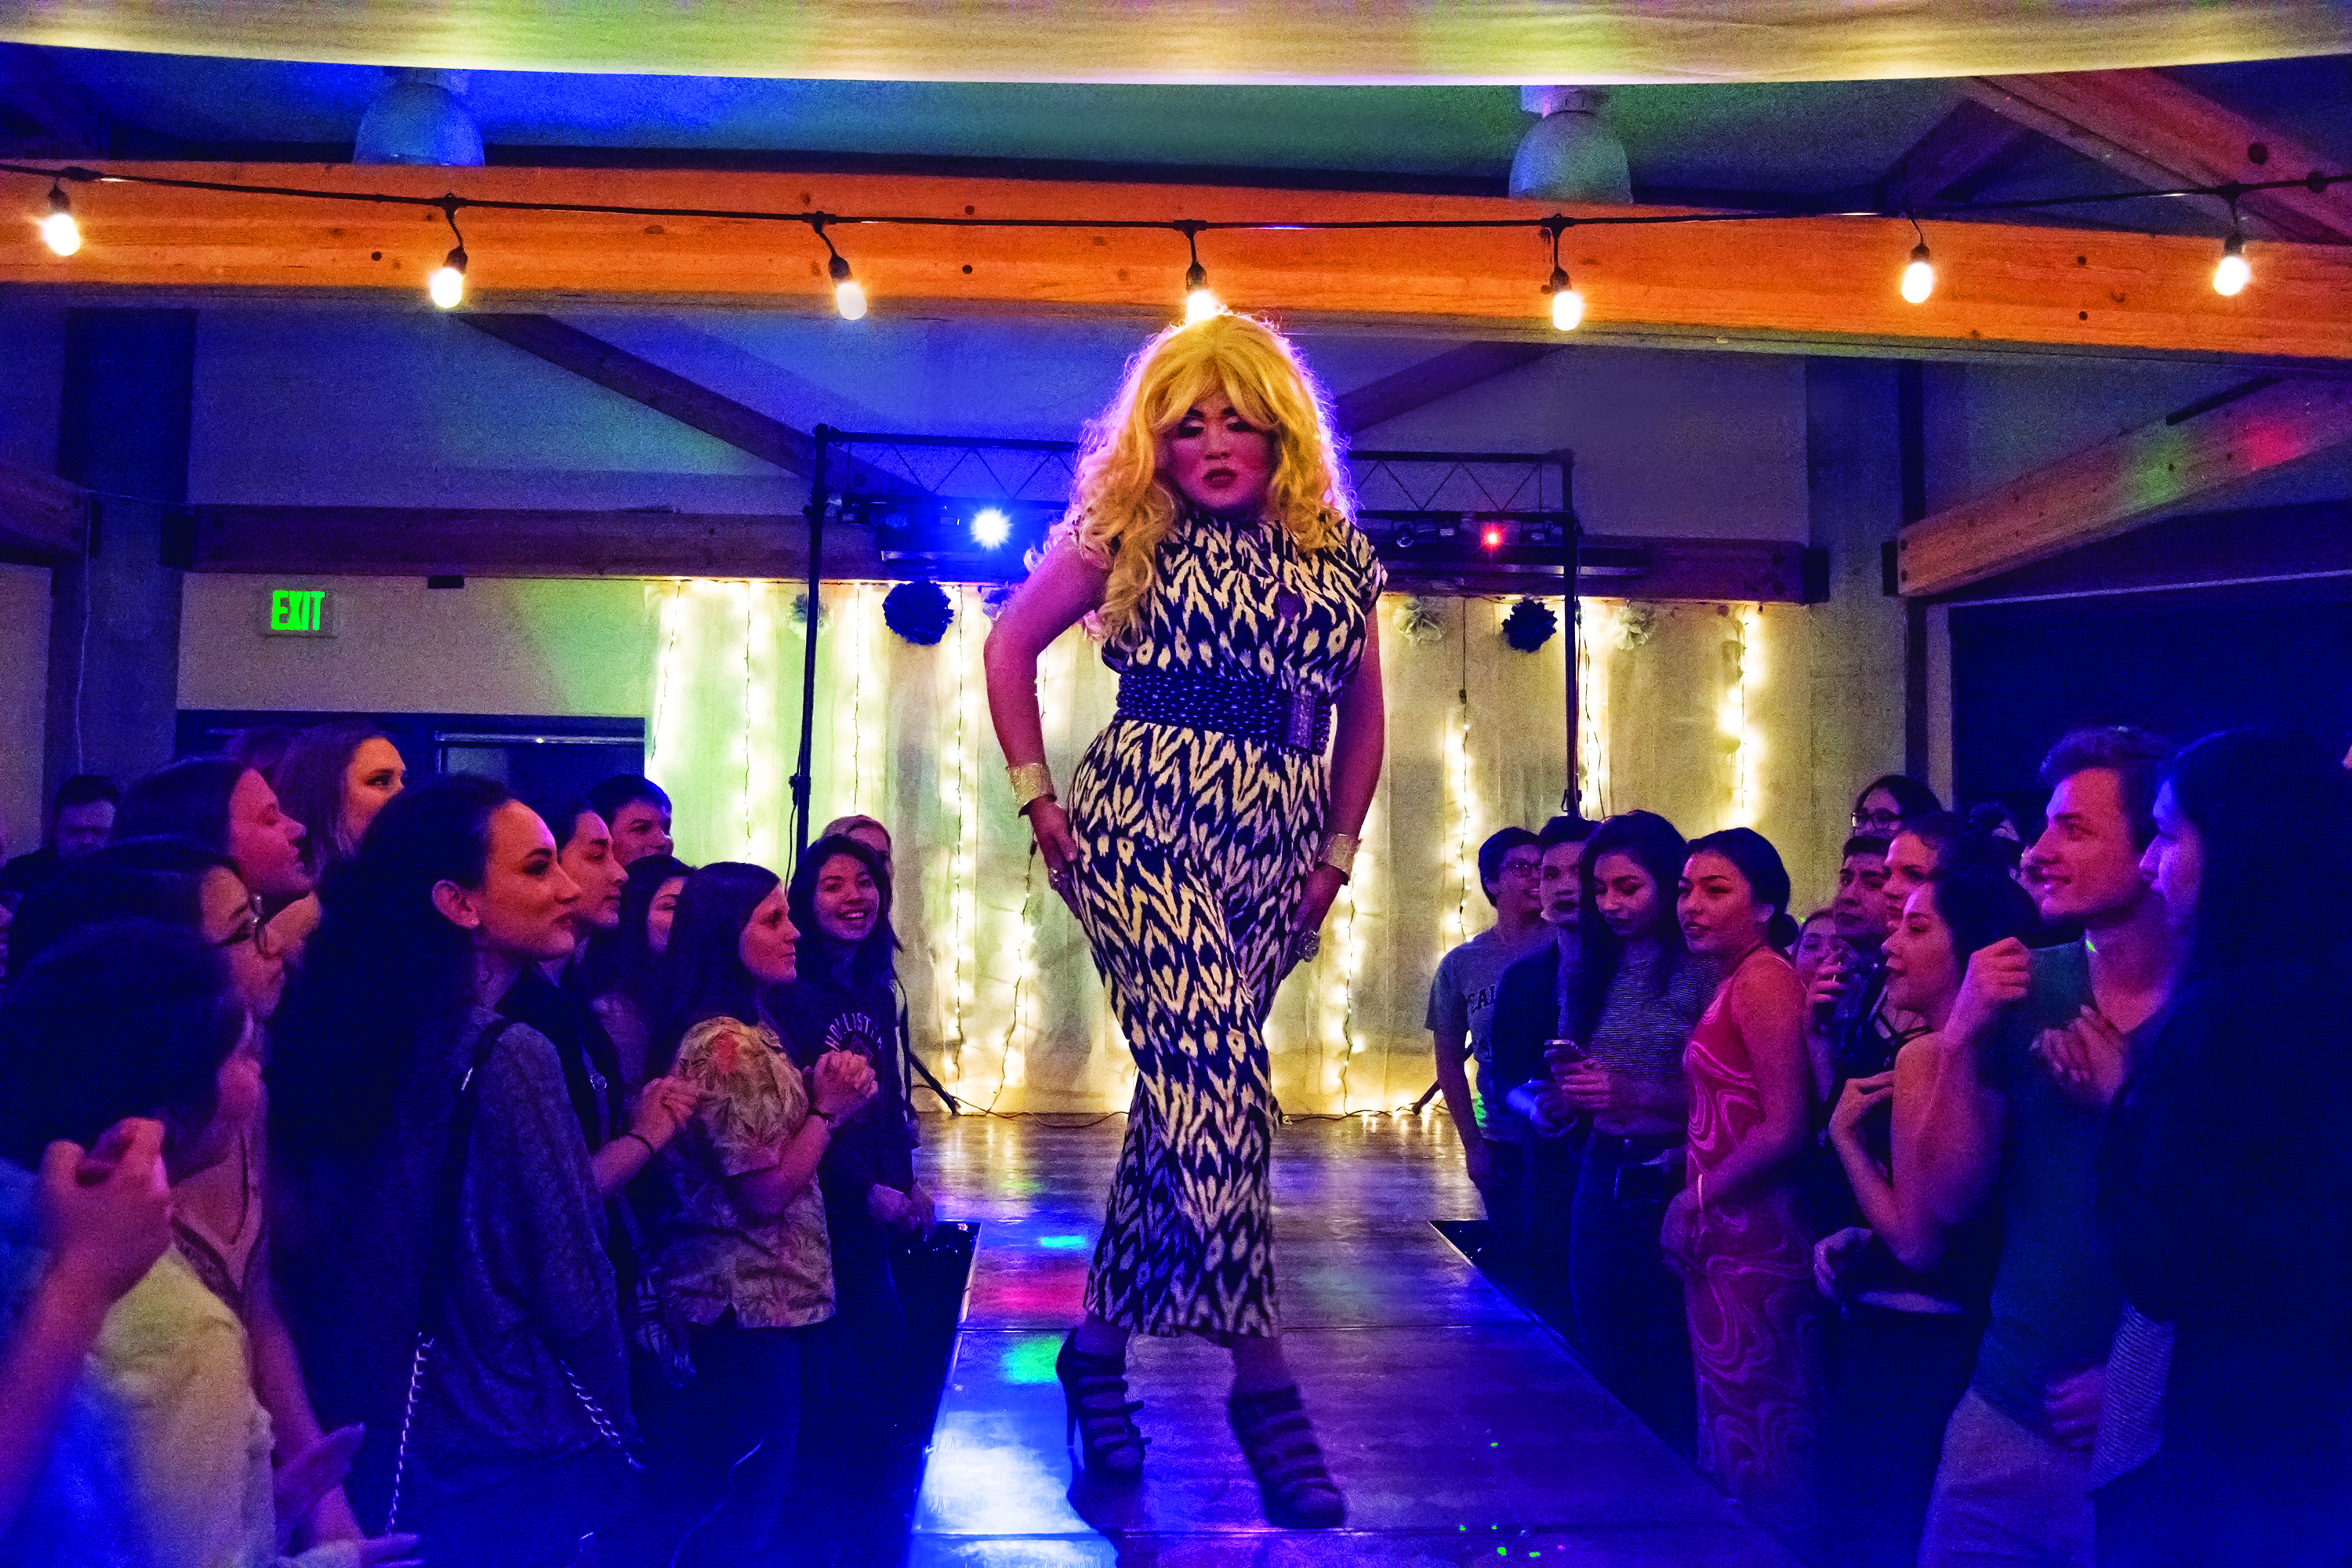 Sally Struts is one of three professional drag performers making up Girl Trouble. The group performed at the annual Drag Ball last Friday night. Photo by Megan Schnabel